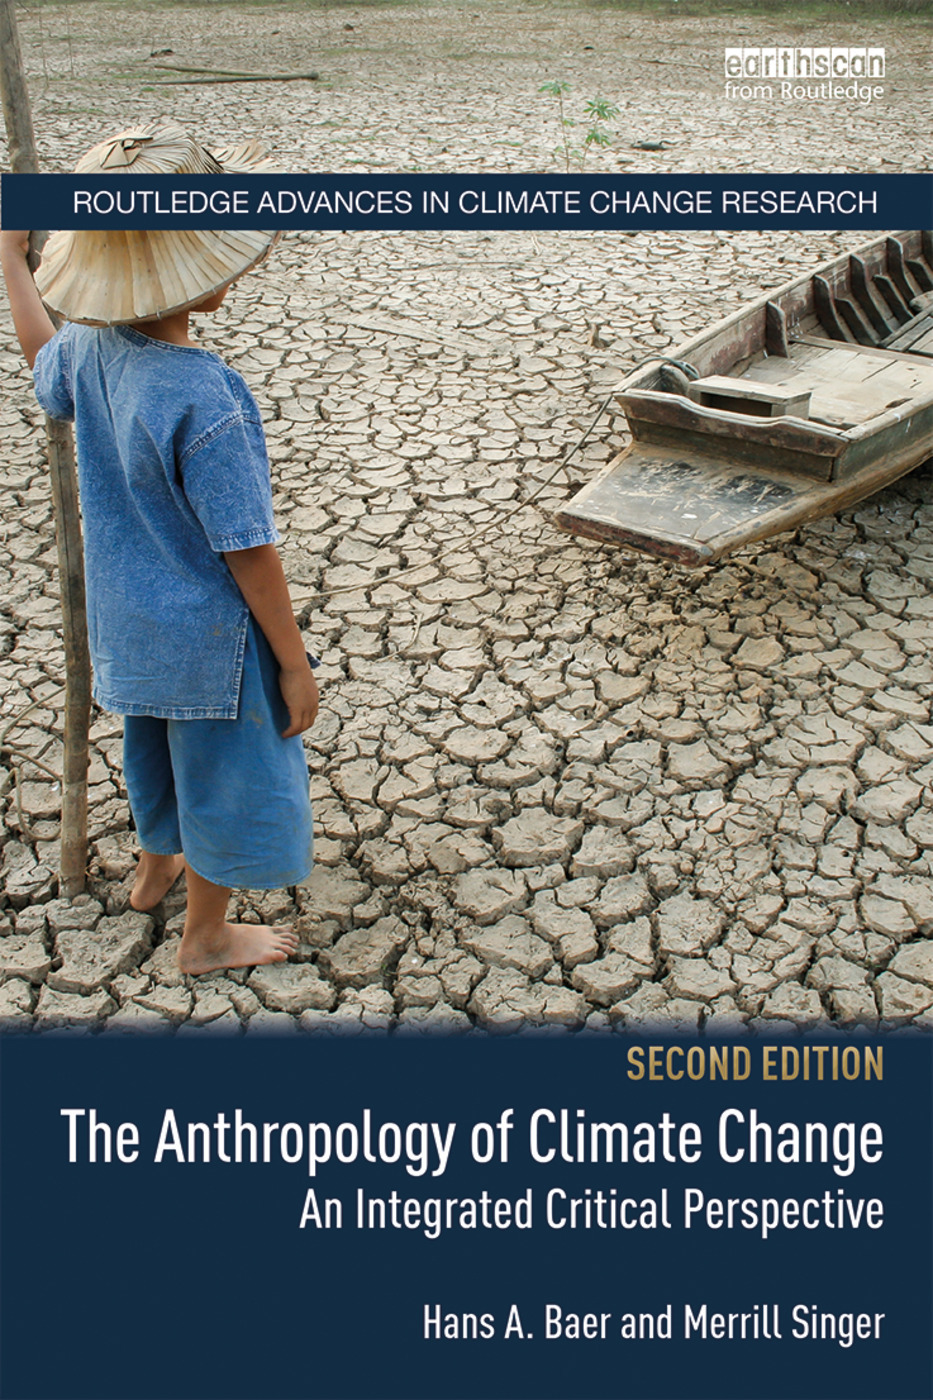 The Anthropology of Climate Change: An Integrated Critical Perspective